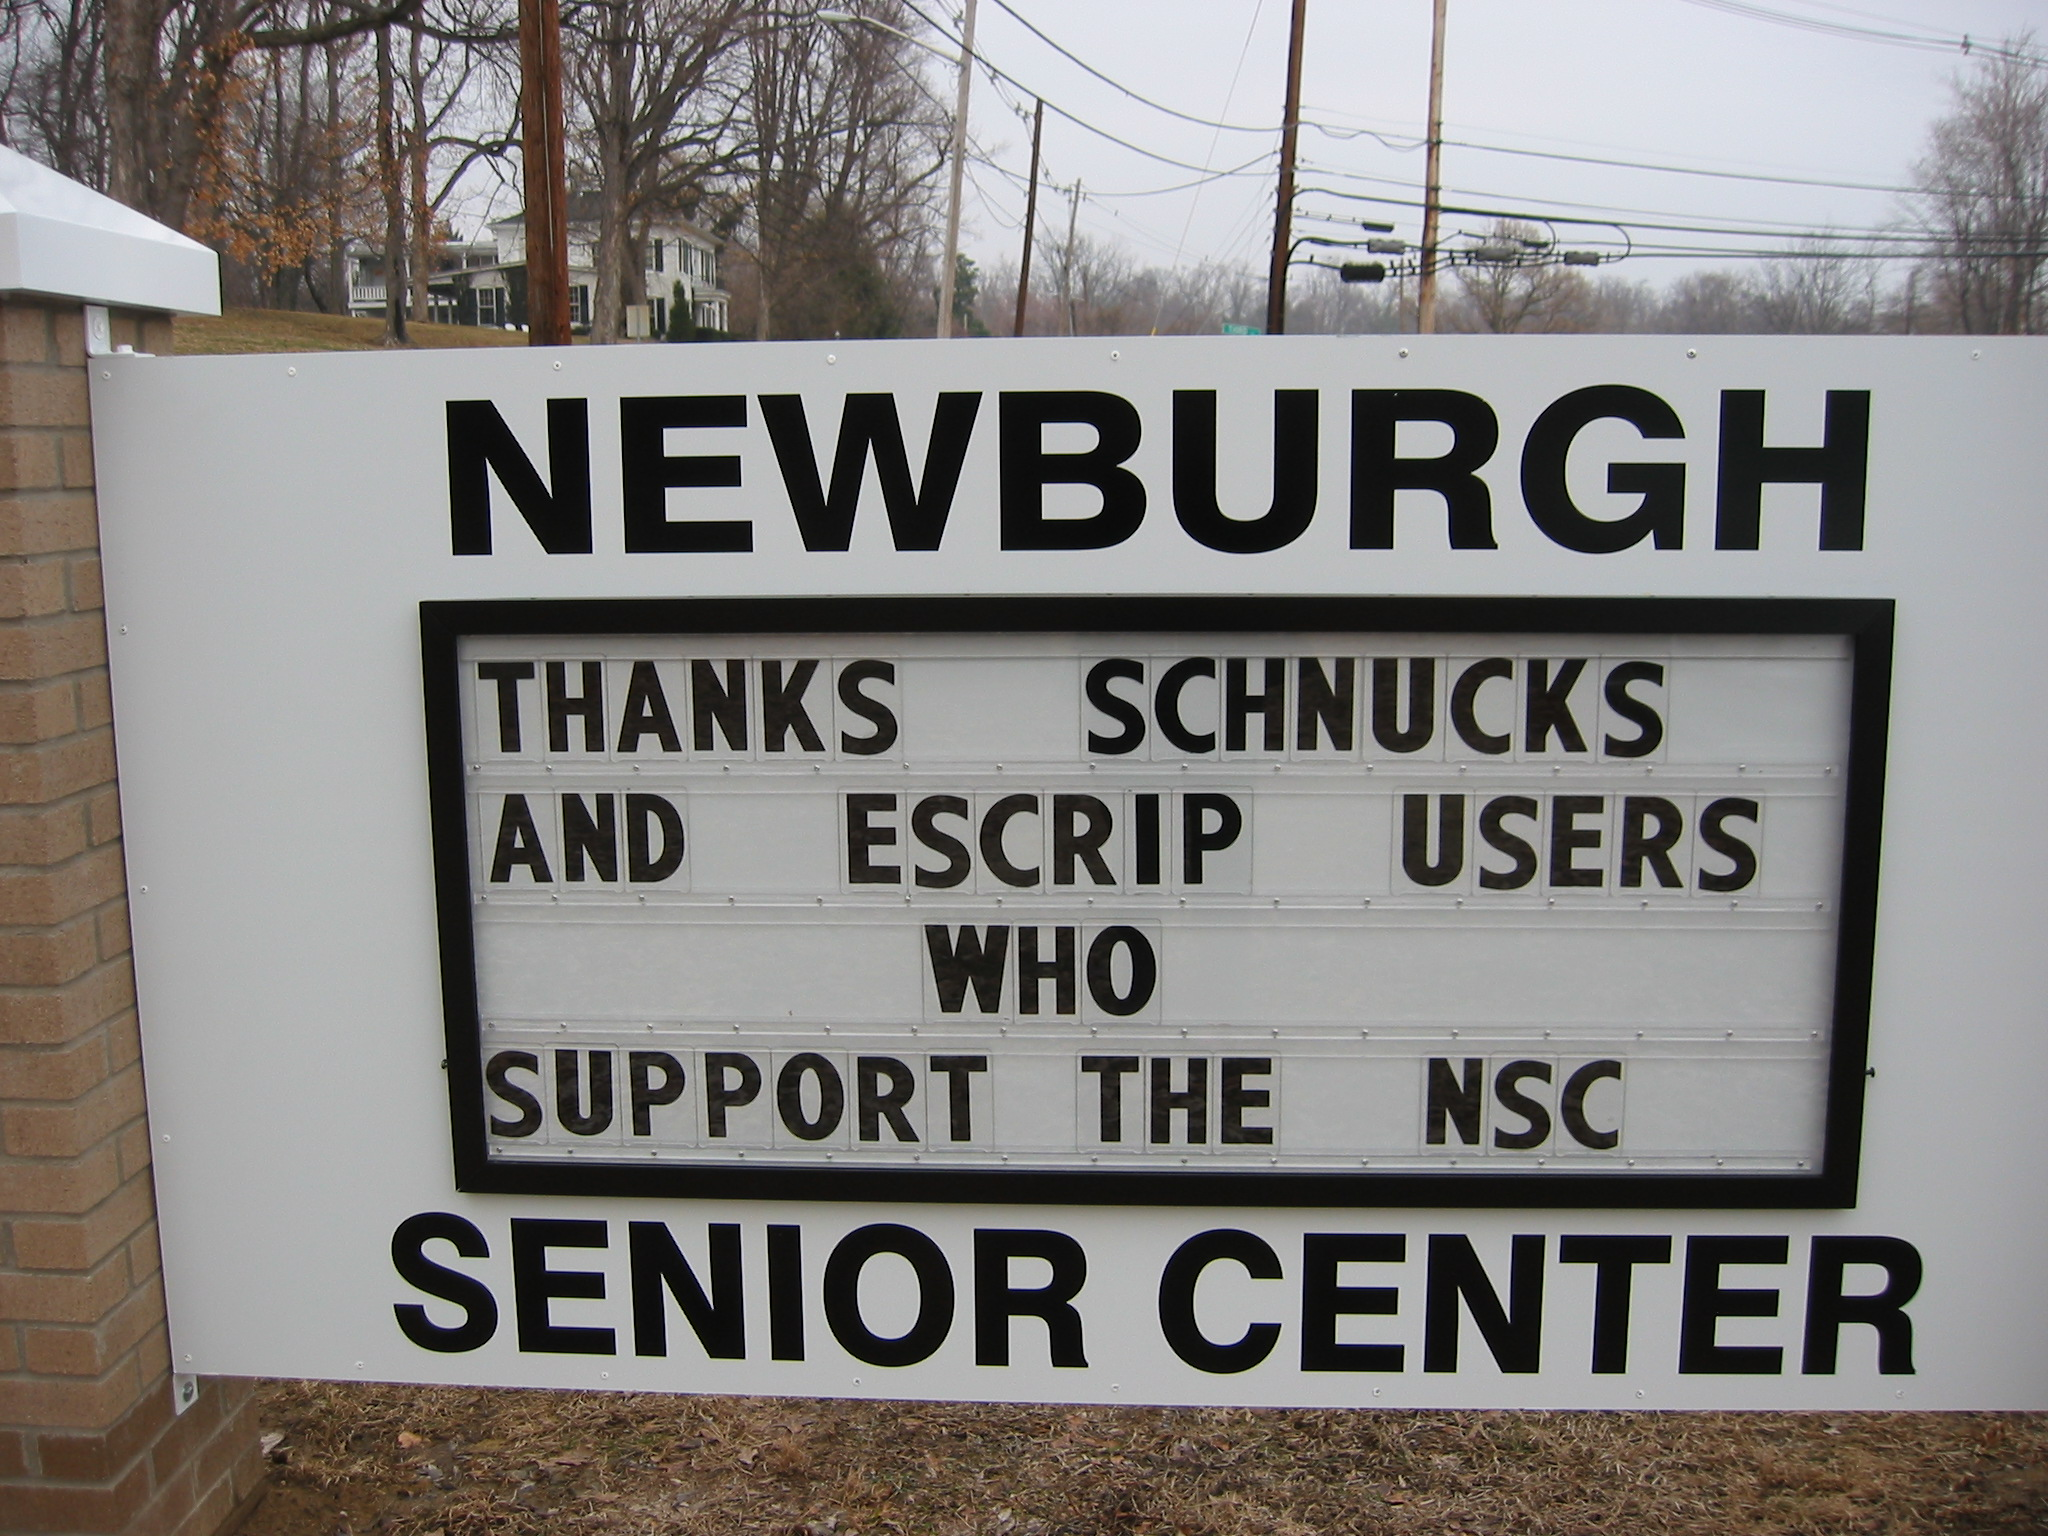 schnucks gift card schnucks escrip card newburgh senior center 795